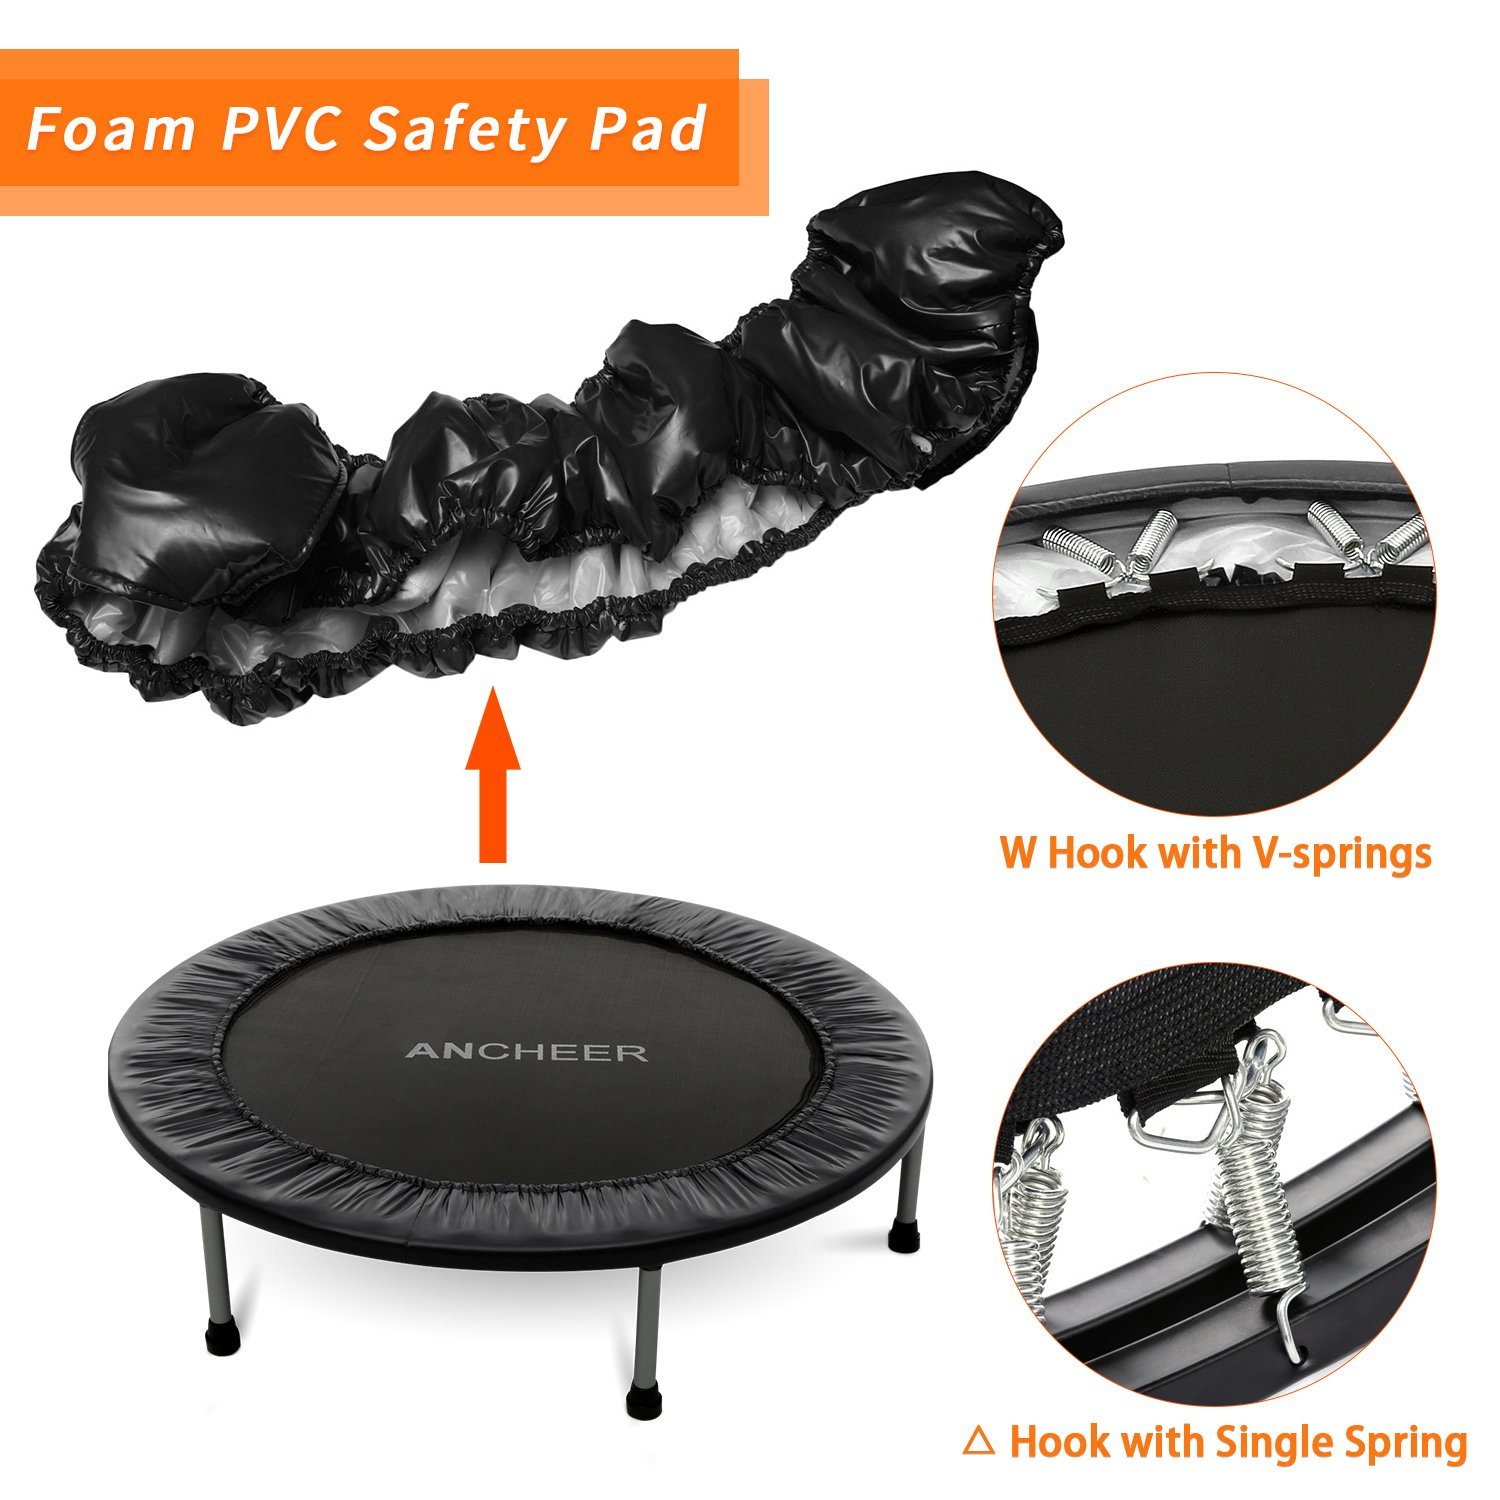 ANCHEER Mini Trampoline with Safety Pad, 220lbs Weight Capacity Fitness Rebounder Trampolines for Home Gym Office Garden Workout Cardio Training Equipment (Black, 40inch-Folding one time) by ANCHEER (Image #1)